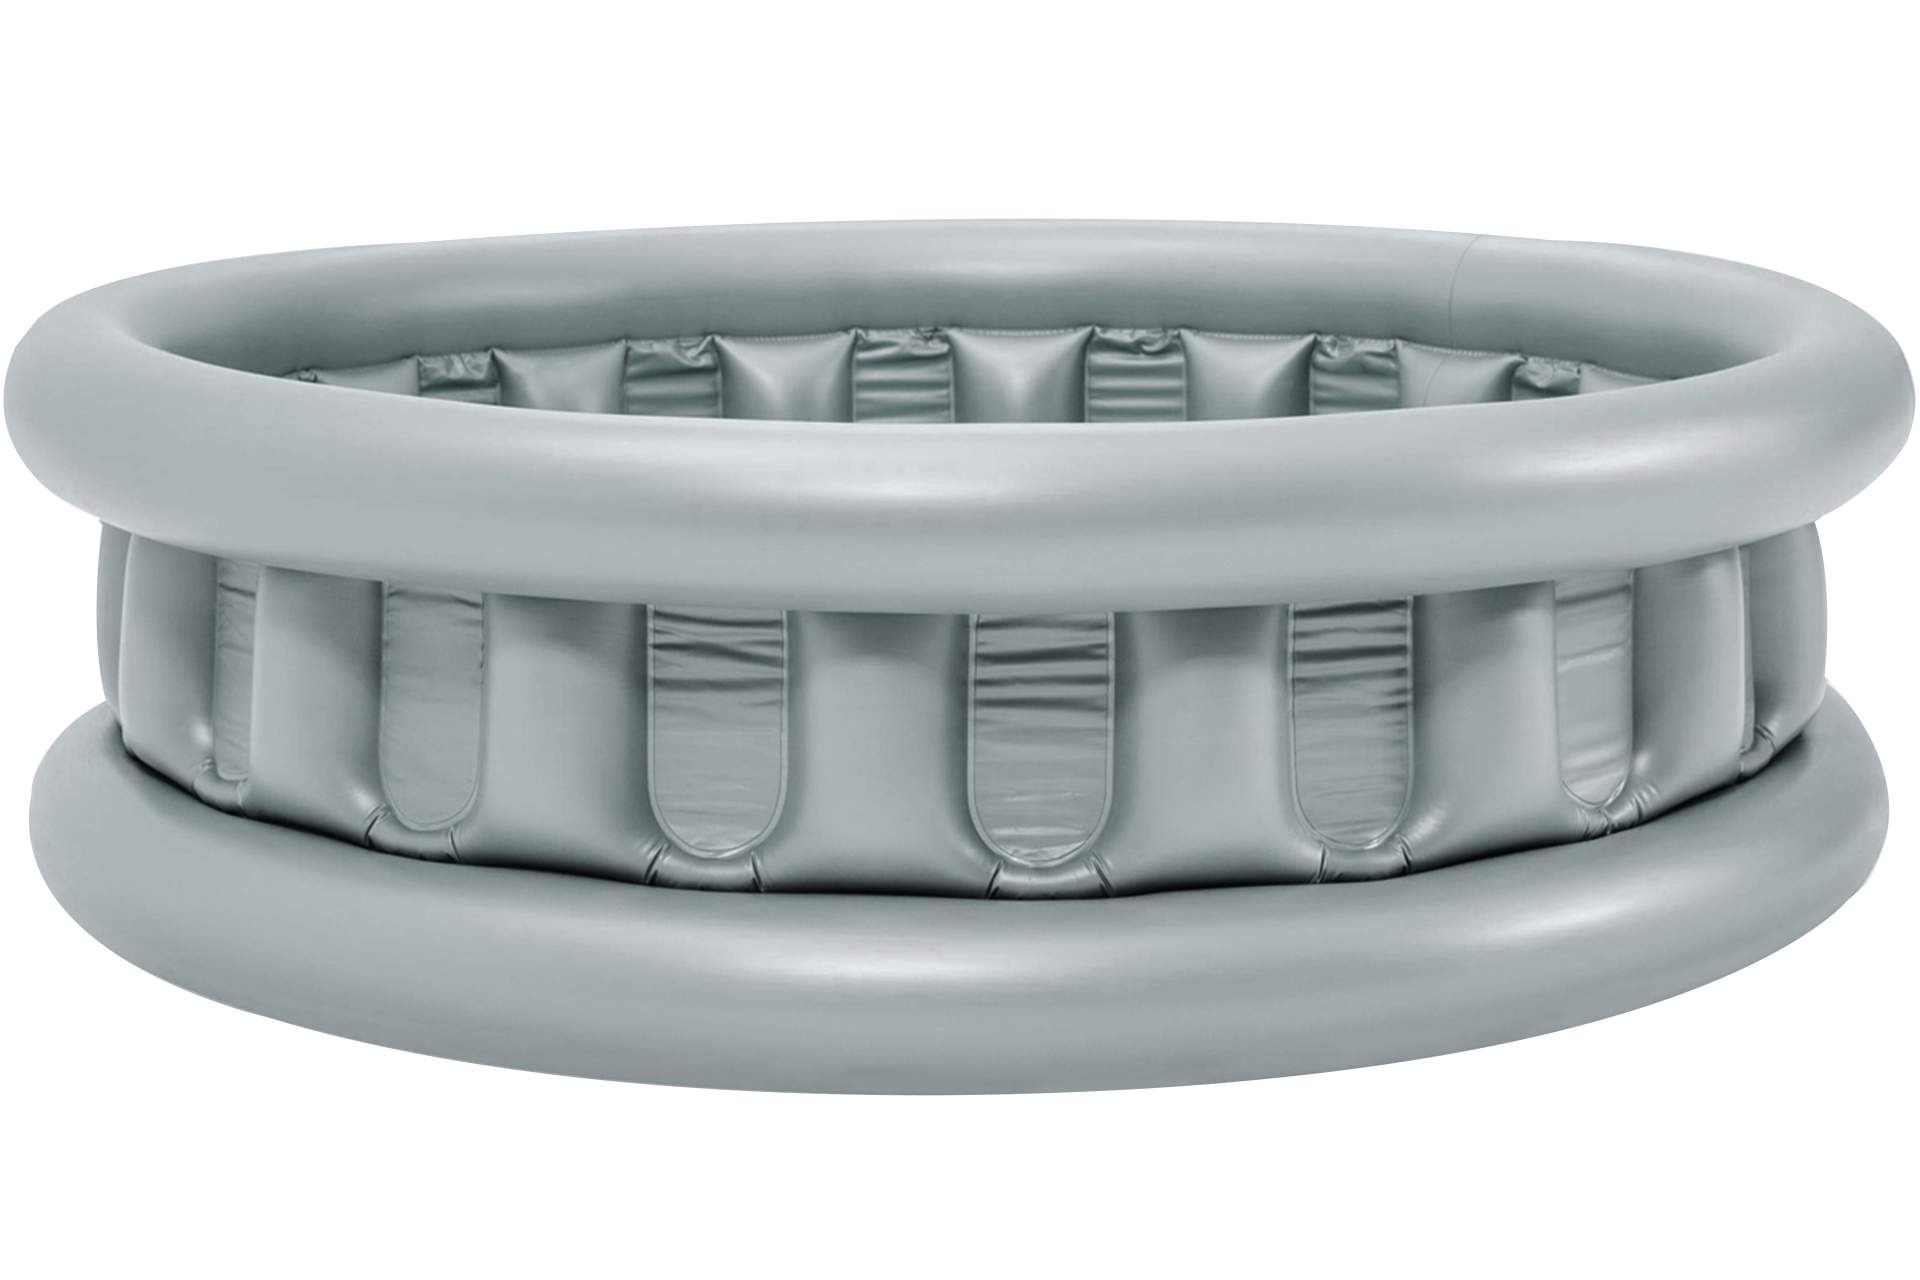 Bestway Oder Intex Pool Bestway Kinder Planschbecken Spaceship 152 X 43 Cm Pool